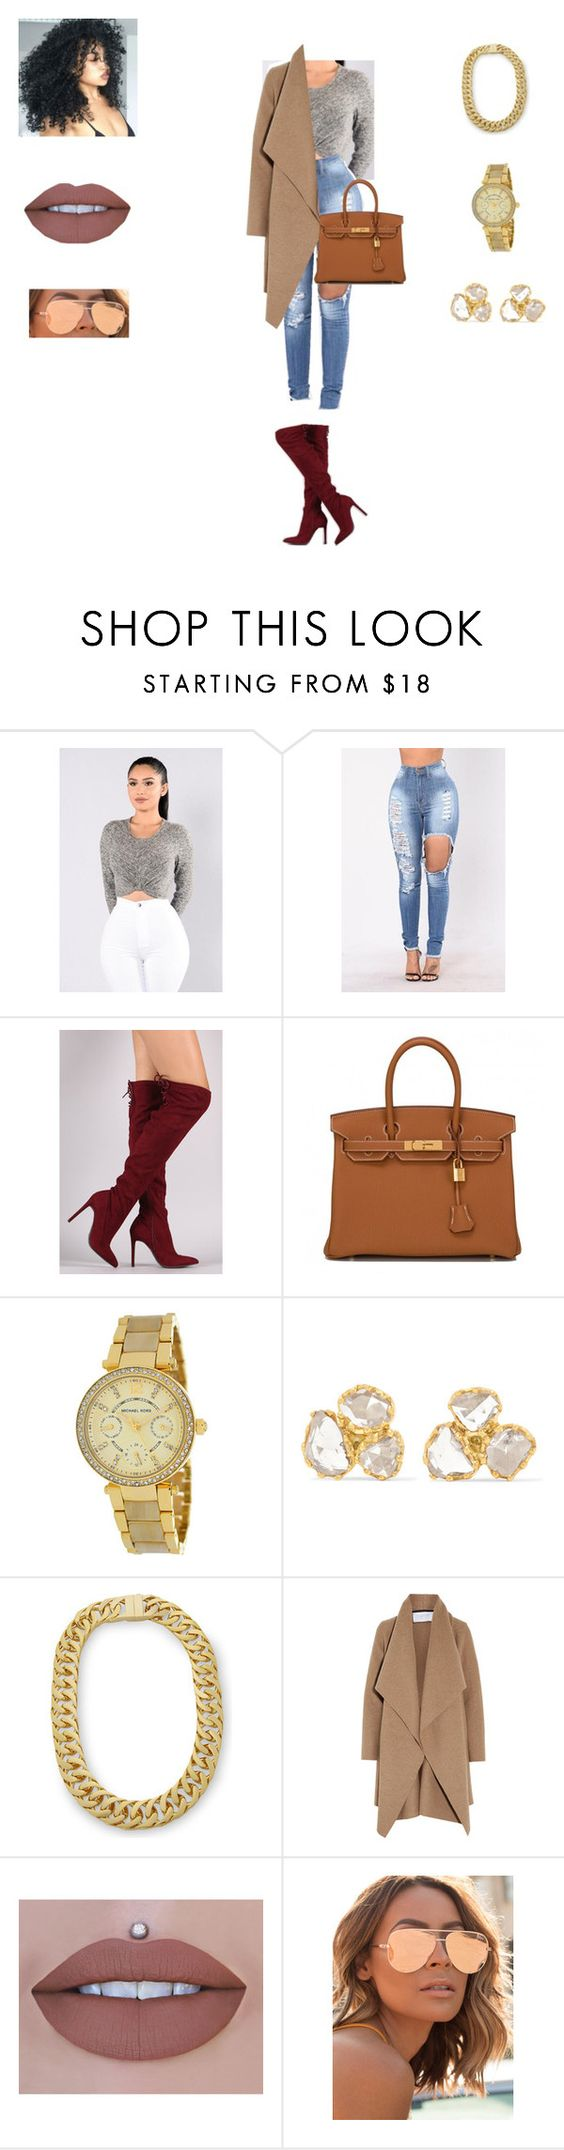 """Tiffany"" by jbell13 on Polyvore featuring Hermès, Michael Kors, Pippa Small, AMBUSH, Harris Wharf London and Quay"